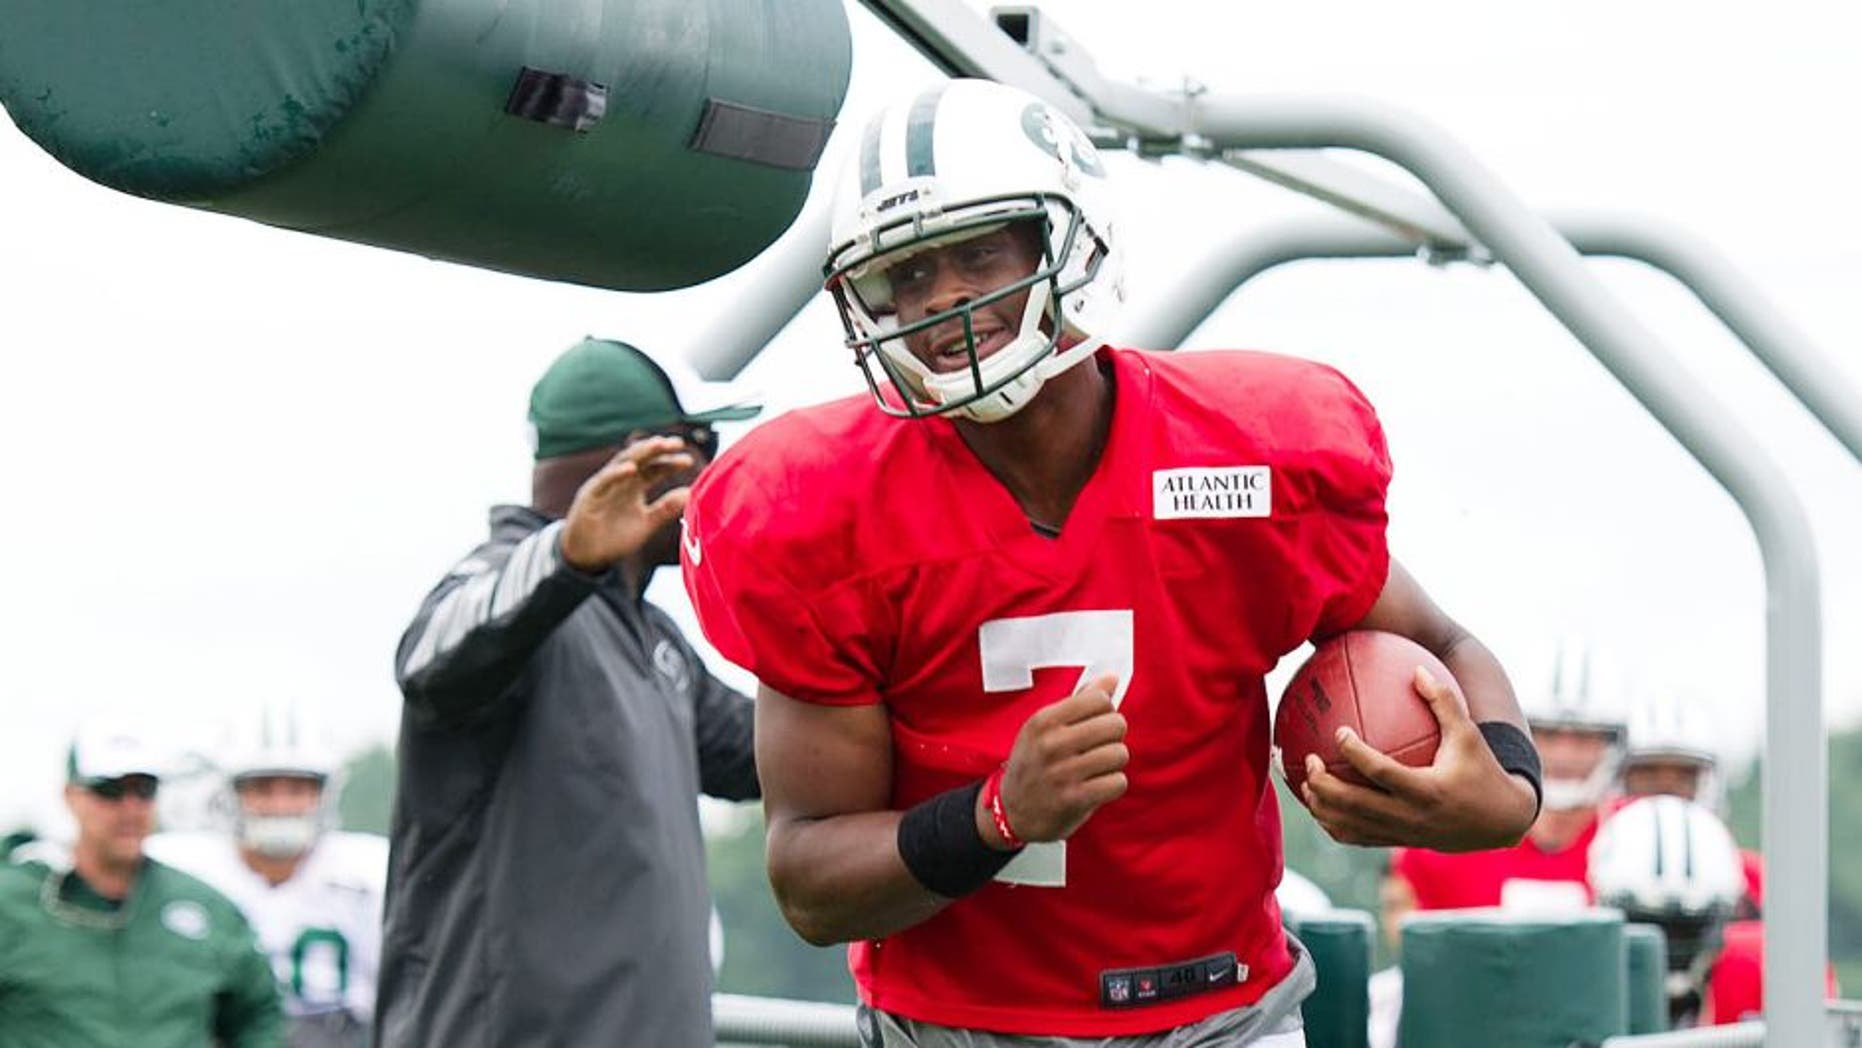 Aug 4, 2014; Cortland, NY, USA; New York Jets quarterback Geno Smith (7) runs with the ball during drills at training camp at SUNY Cortland. Mandatory Credit: Rich Barnes-USA TODAY Sports